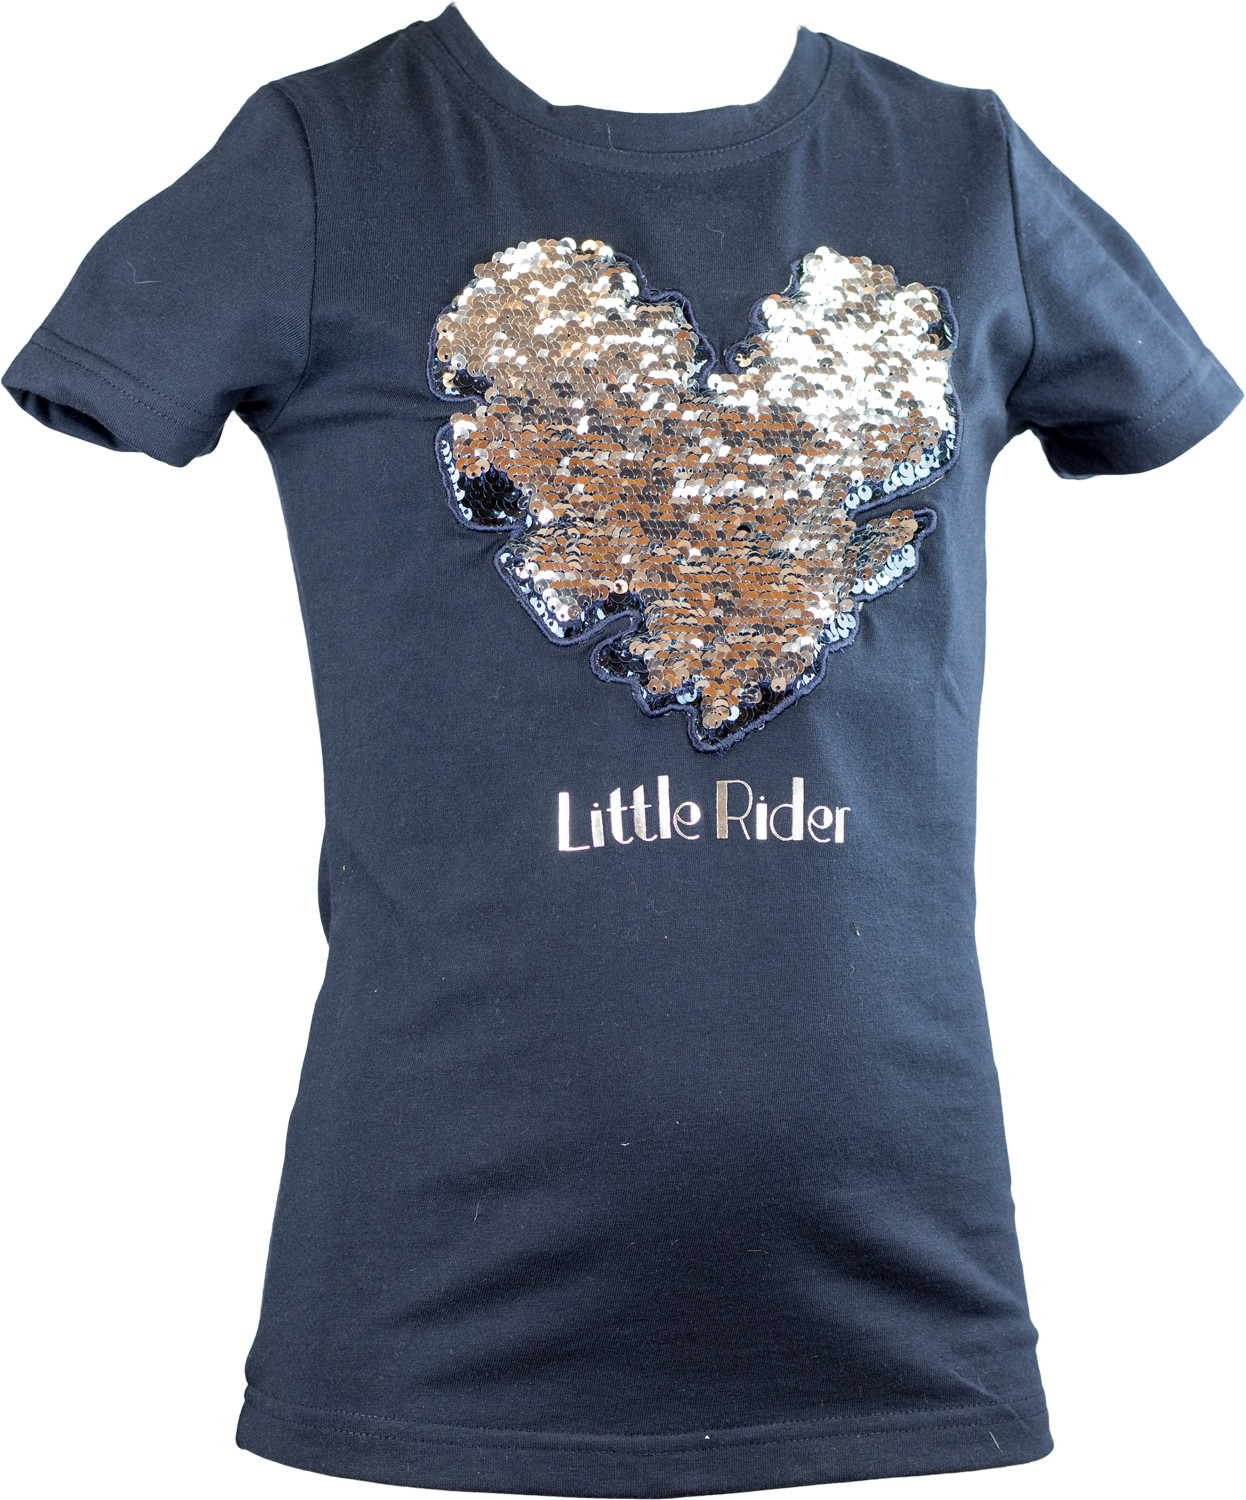 T-SHIRT LITTLE RIDER II MARINBLÅ-navy/120